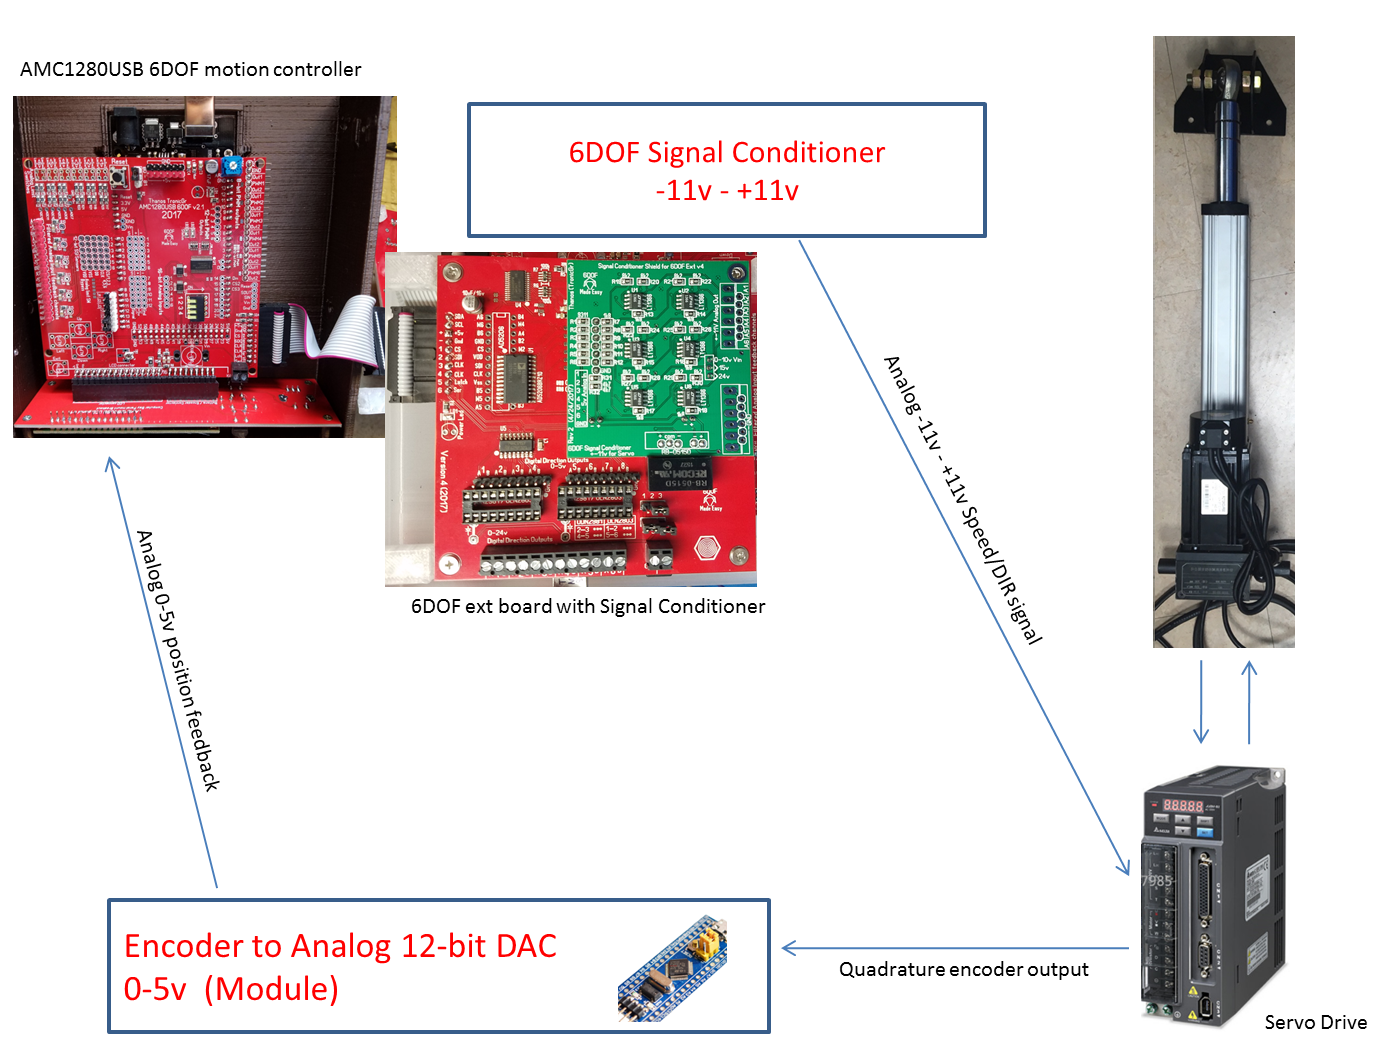 How To Install An External Limit Switch Using A Control Box additionally Actuator Controls Diagram further Warner Linear Actuator Wiring Diagram further Linear Actuators Airplanes besides Linear Actuator Wiring Color Code. on linear actuator control using an external limit switch